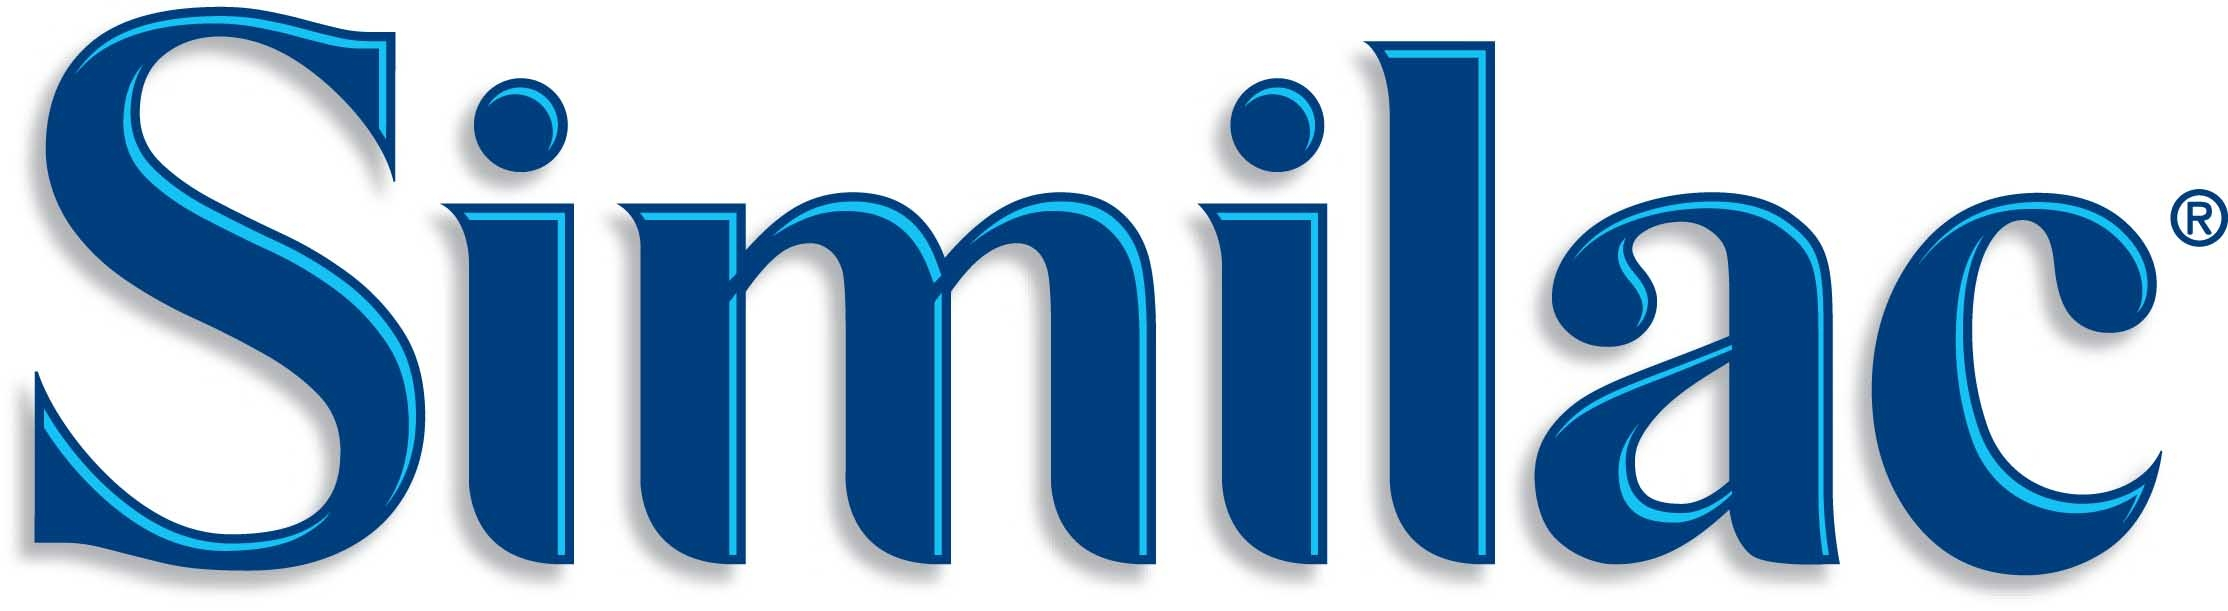 Shopping Tips for Similac: 1. Ready-to-use bottles are free when Similac gives out $3 off 1 discounts. As for the big powder formulas, the best time to buy is when the big box stores offer their Buy 2, Get a $5 or $10 store gift card back. You can use the higher dollar amount coupons on each item upwards of $10 off a large canister. 2.